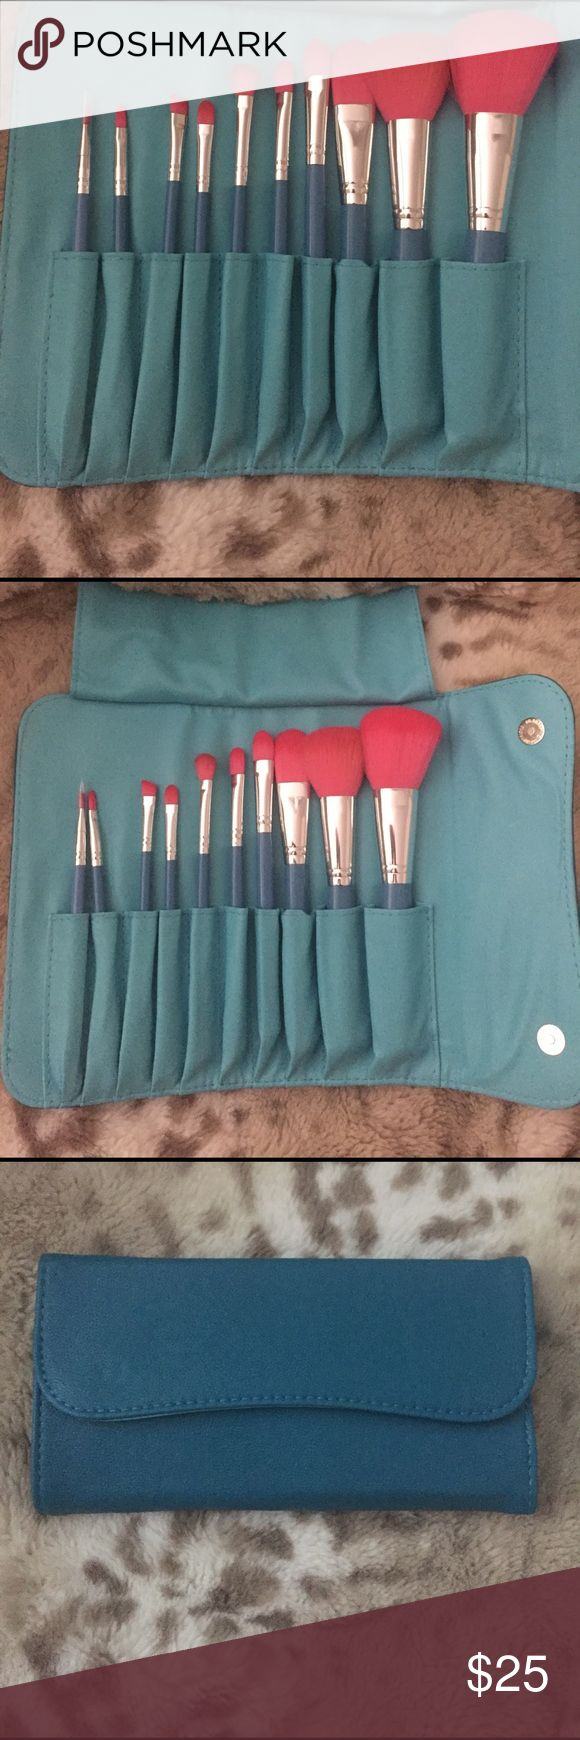 🚫Sold🚫Morphe 10 piece vegan set 680 Brand new 10 piece Vegan brush set. These brushes are great for any type of liquid or cream application, but can also be used on powder products for a FLAWLESS application. 100% vegan (non-animal product). Teal with pink bristles ⭐️Price is firm⭐️ morphe Makeup Brushes & Tools